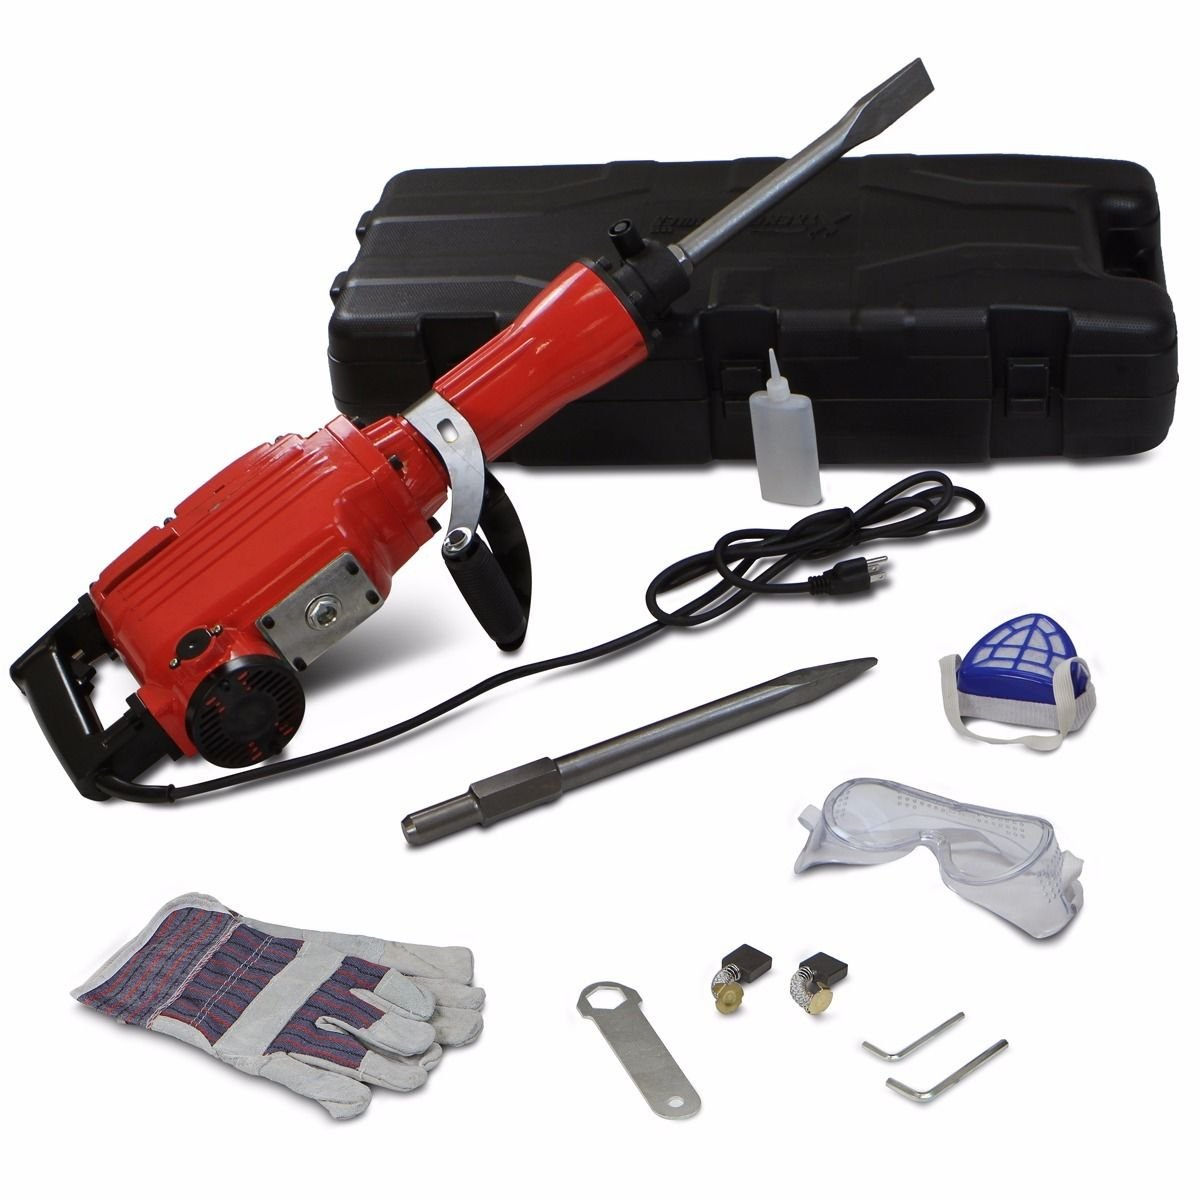 2200W 1900RPM Electric Demolition Jack Hammer Concrete Breaker Punch Chisels HD by Jikkolumlukka